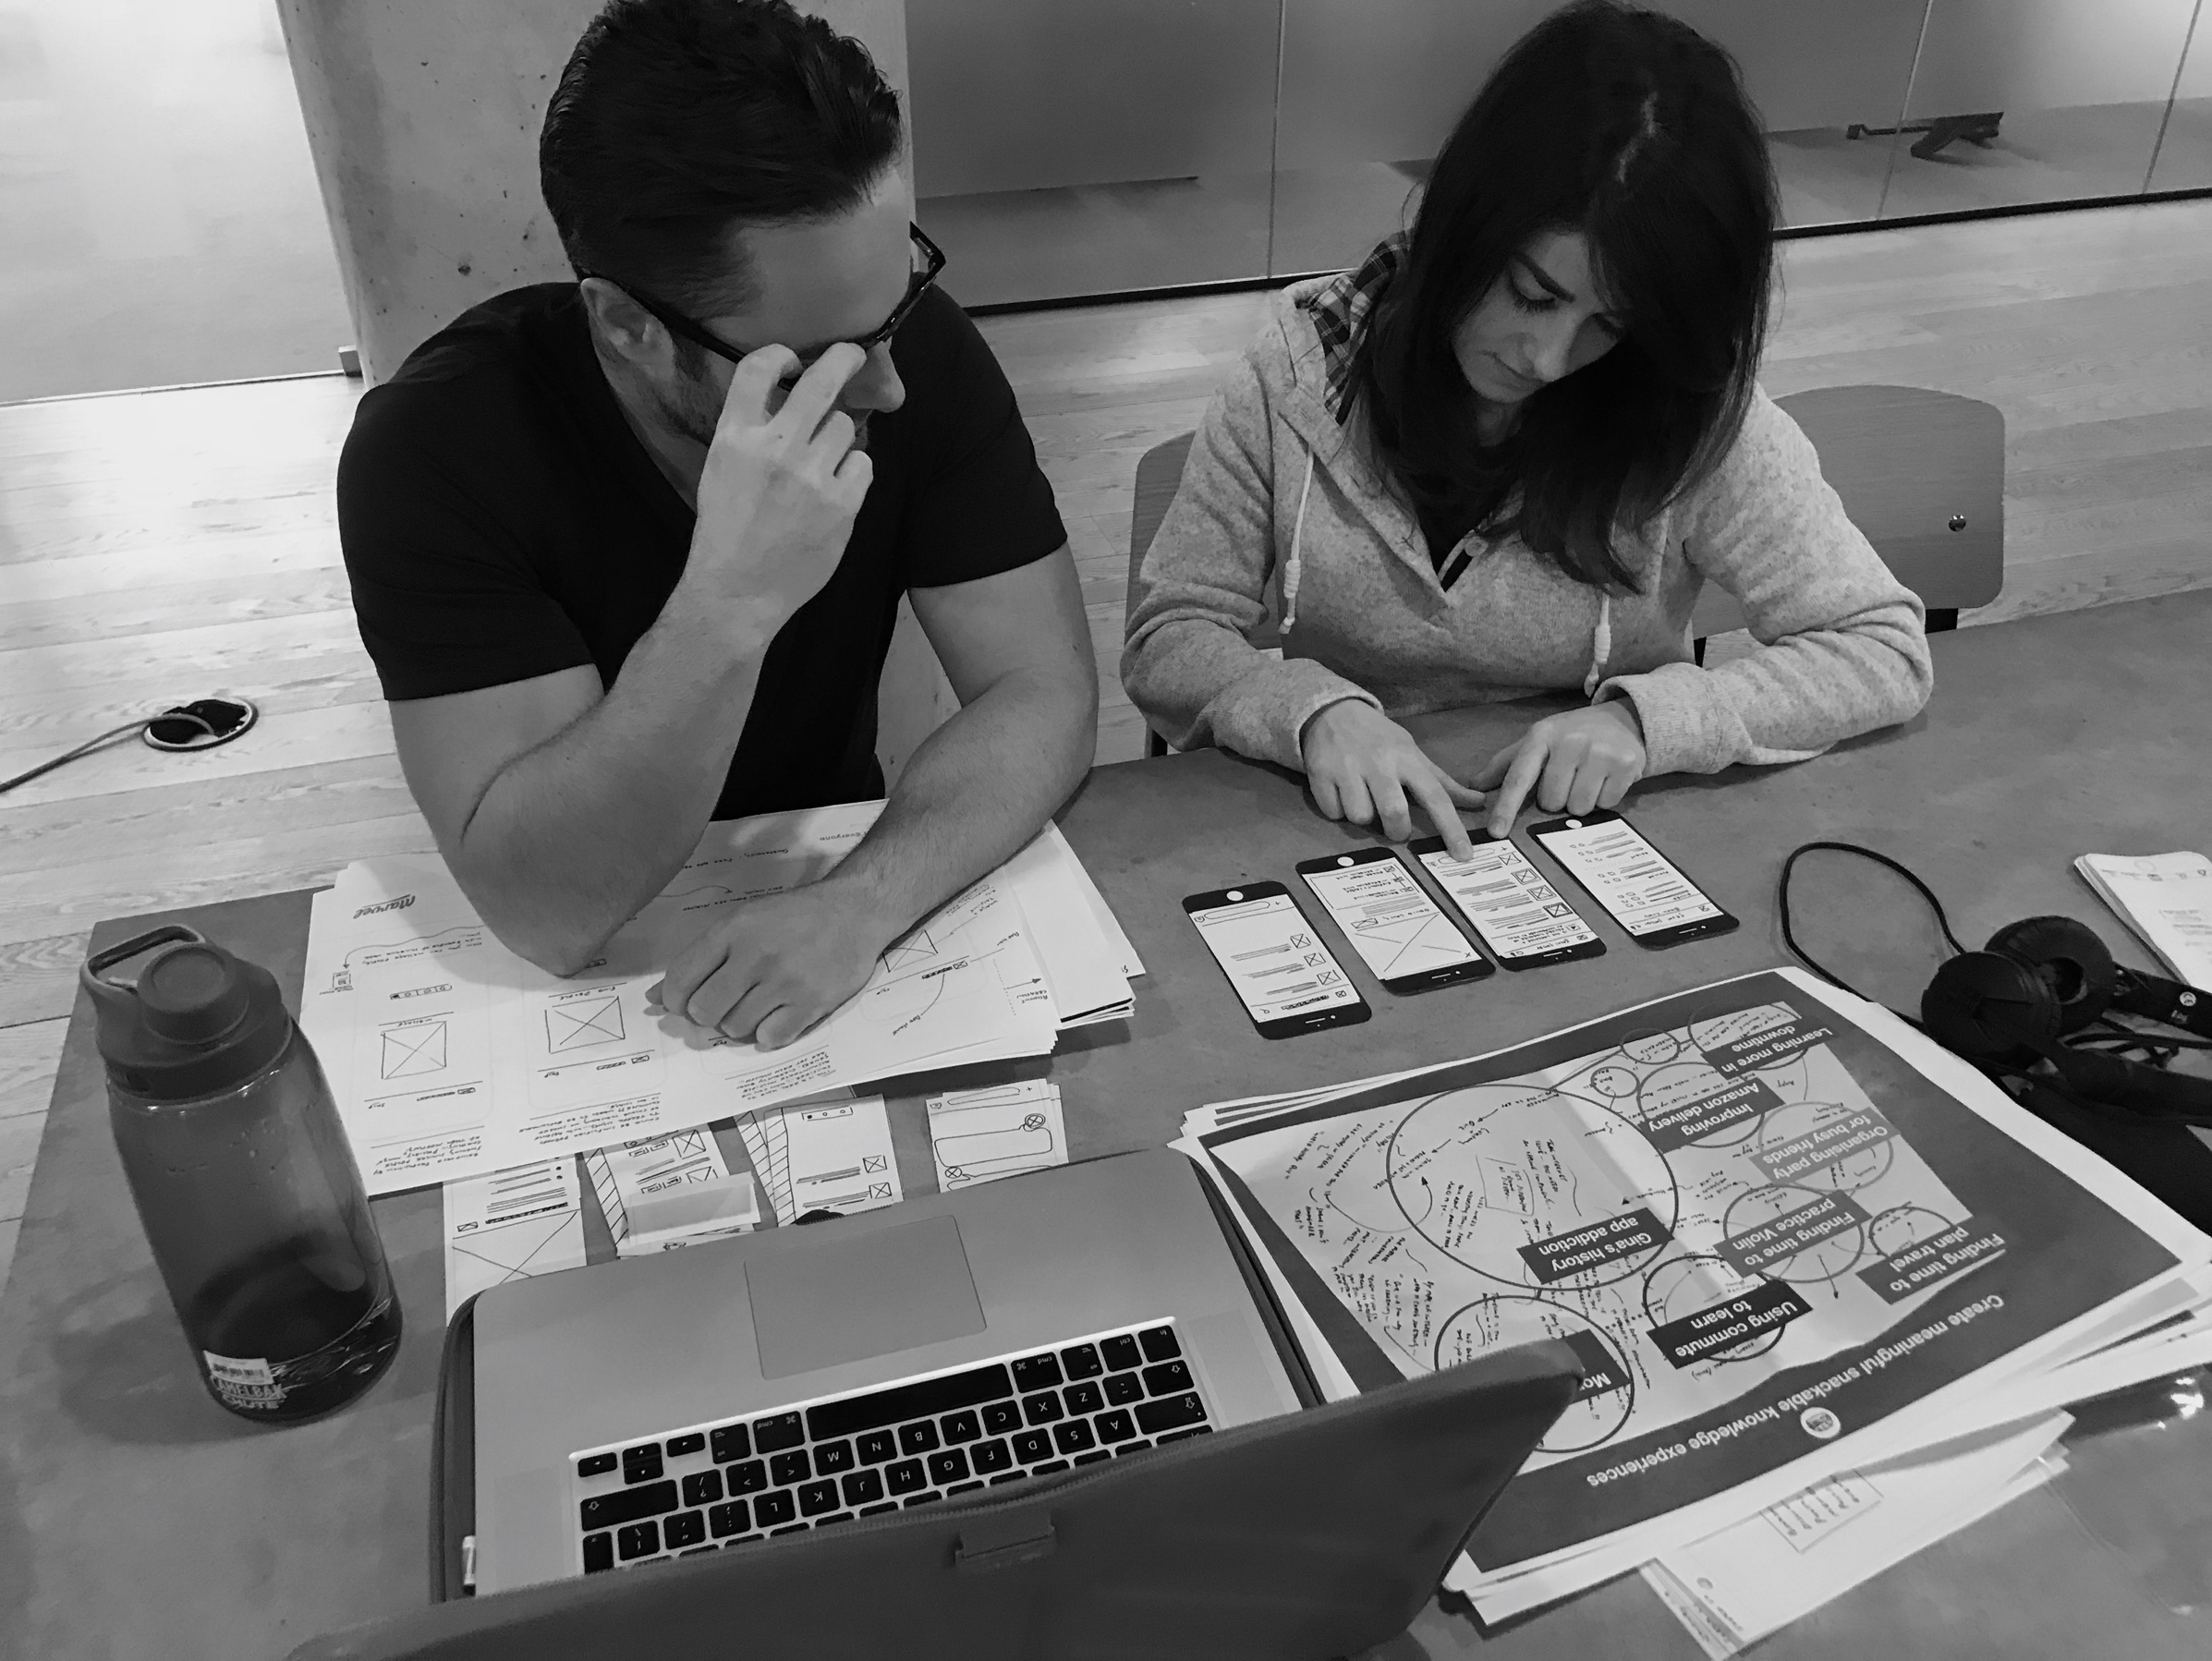 Prototyping on paper - Tasks are only meaningful to users who have an understanding of what the app is and does—the scenario was not providing enough context. The low fidelity nature of the prototype was also not helping users orientate themselves.